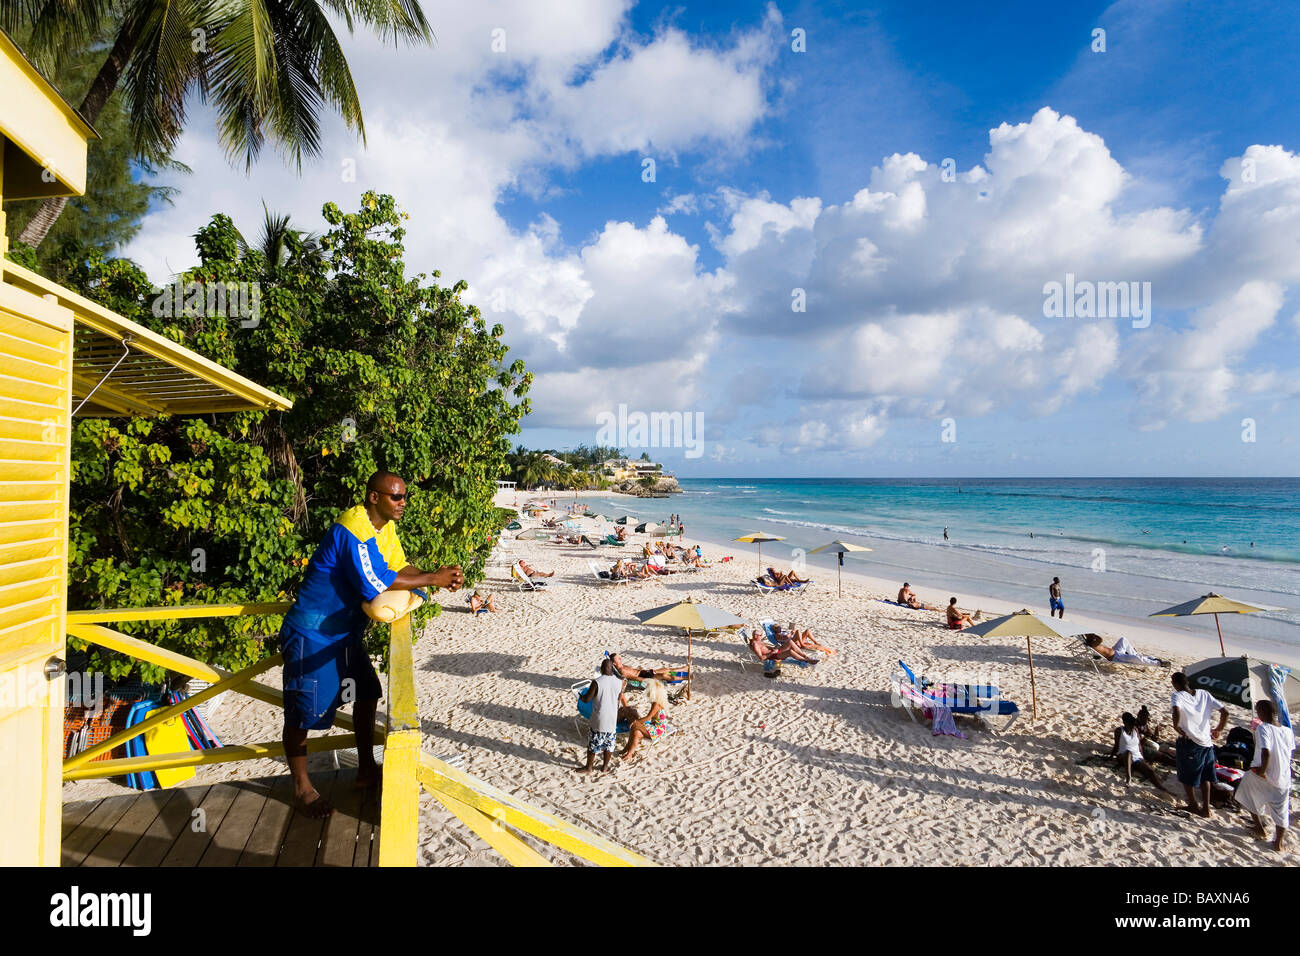 Lifequard observing Accra Beach, Rockley, Barbados, Caribbean - Stock Image